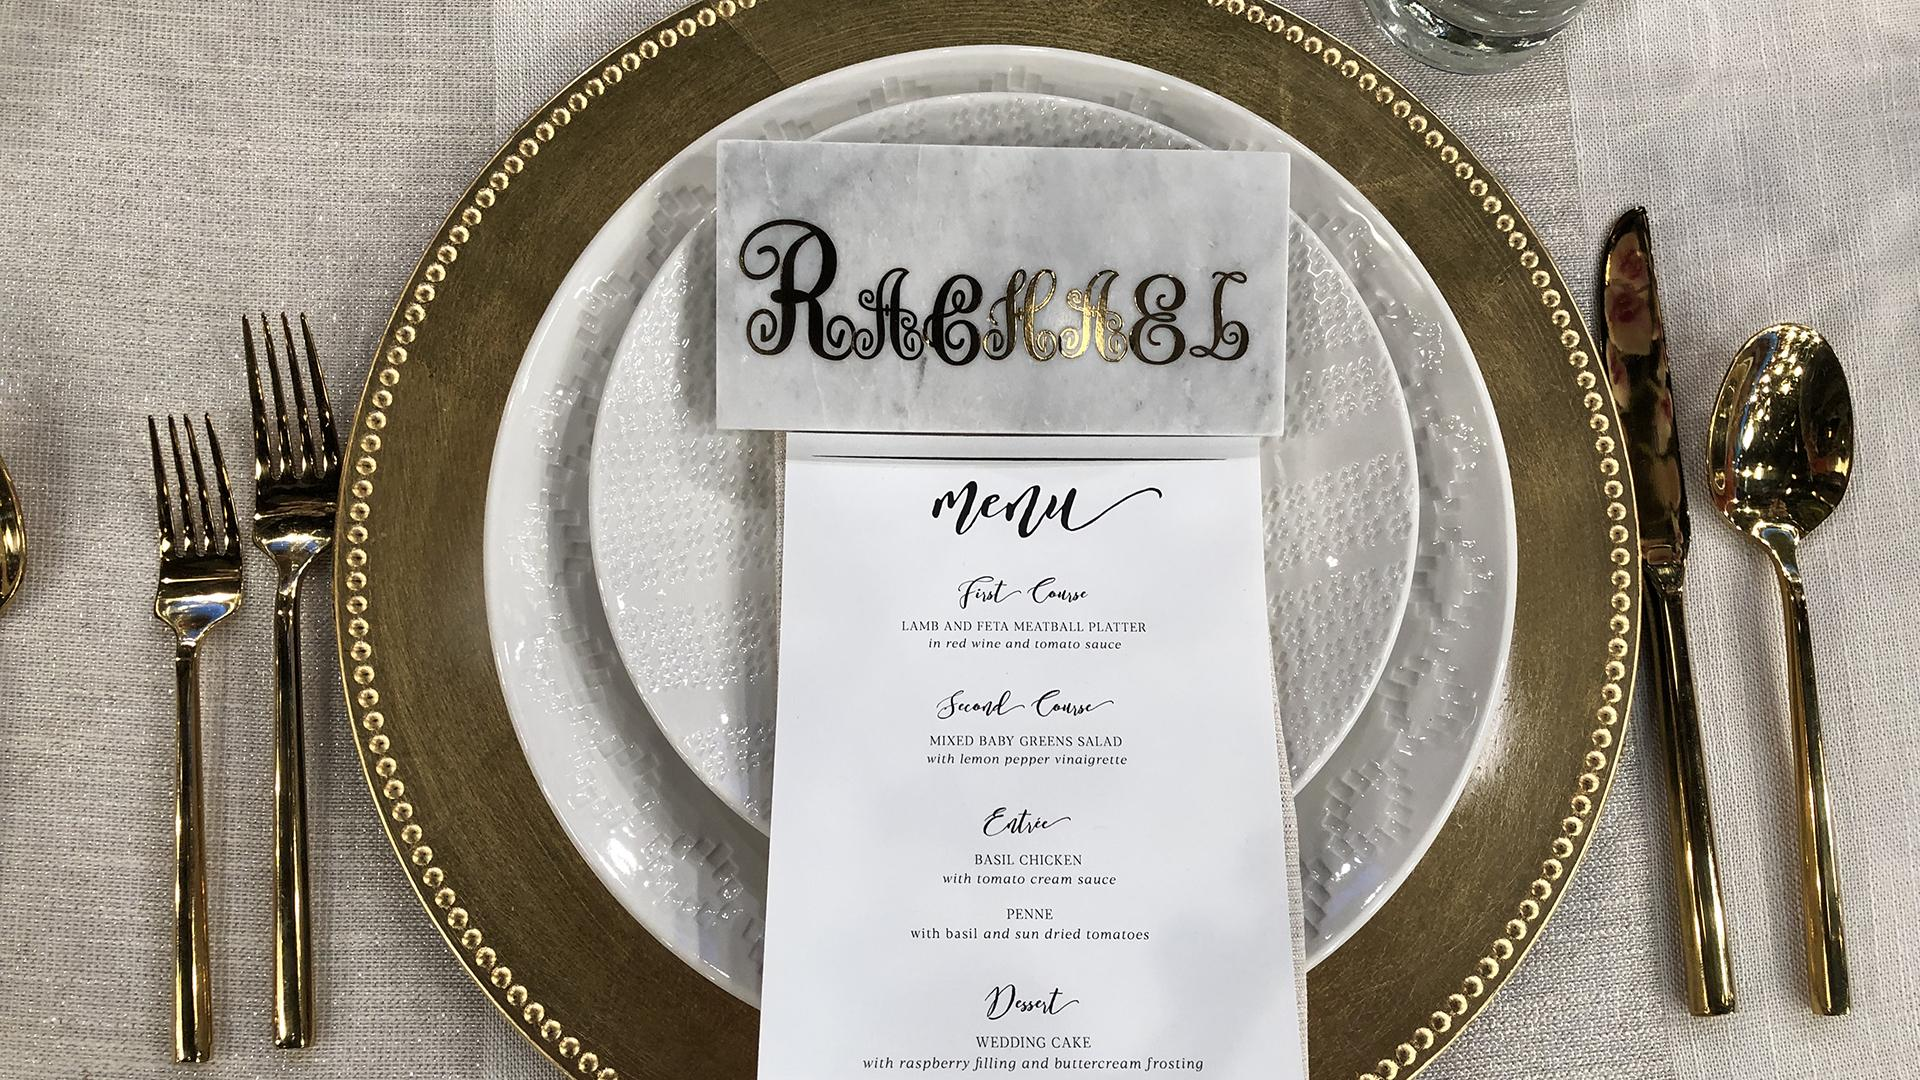 2 Paperless Diy Wedding Seating Chart Ideas Escort Board Marble Place Cards Rachael Ray Show